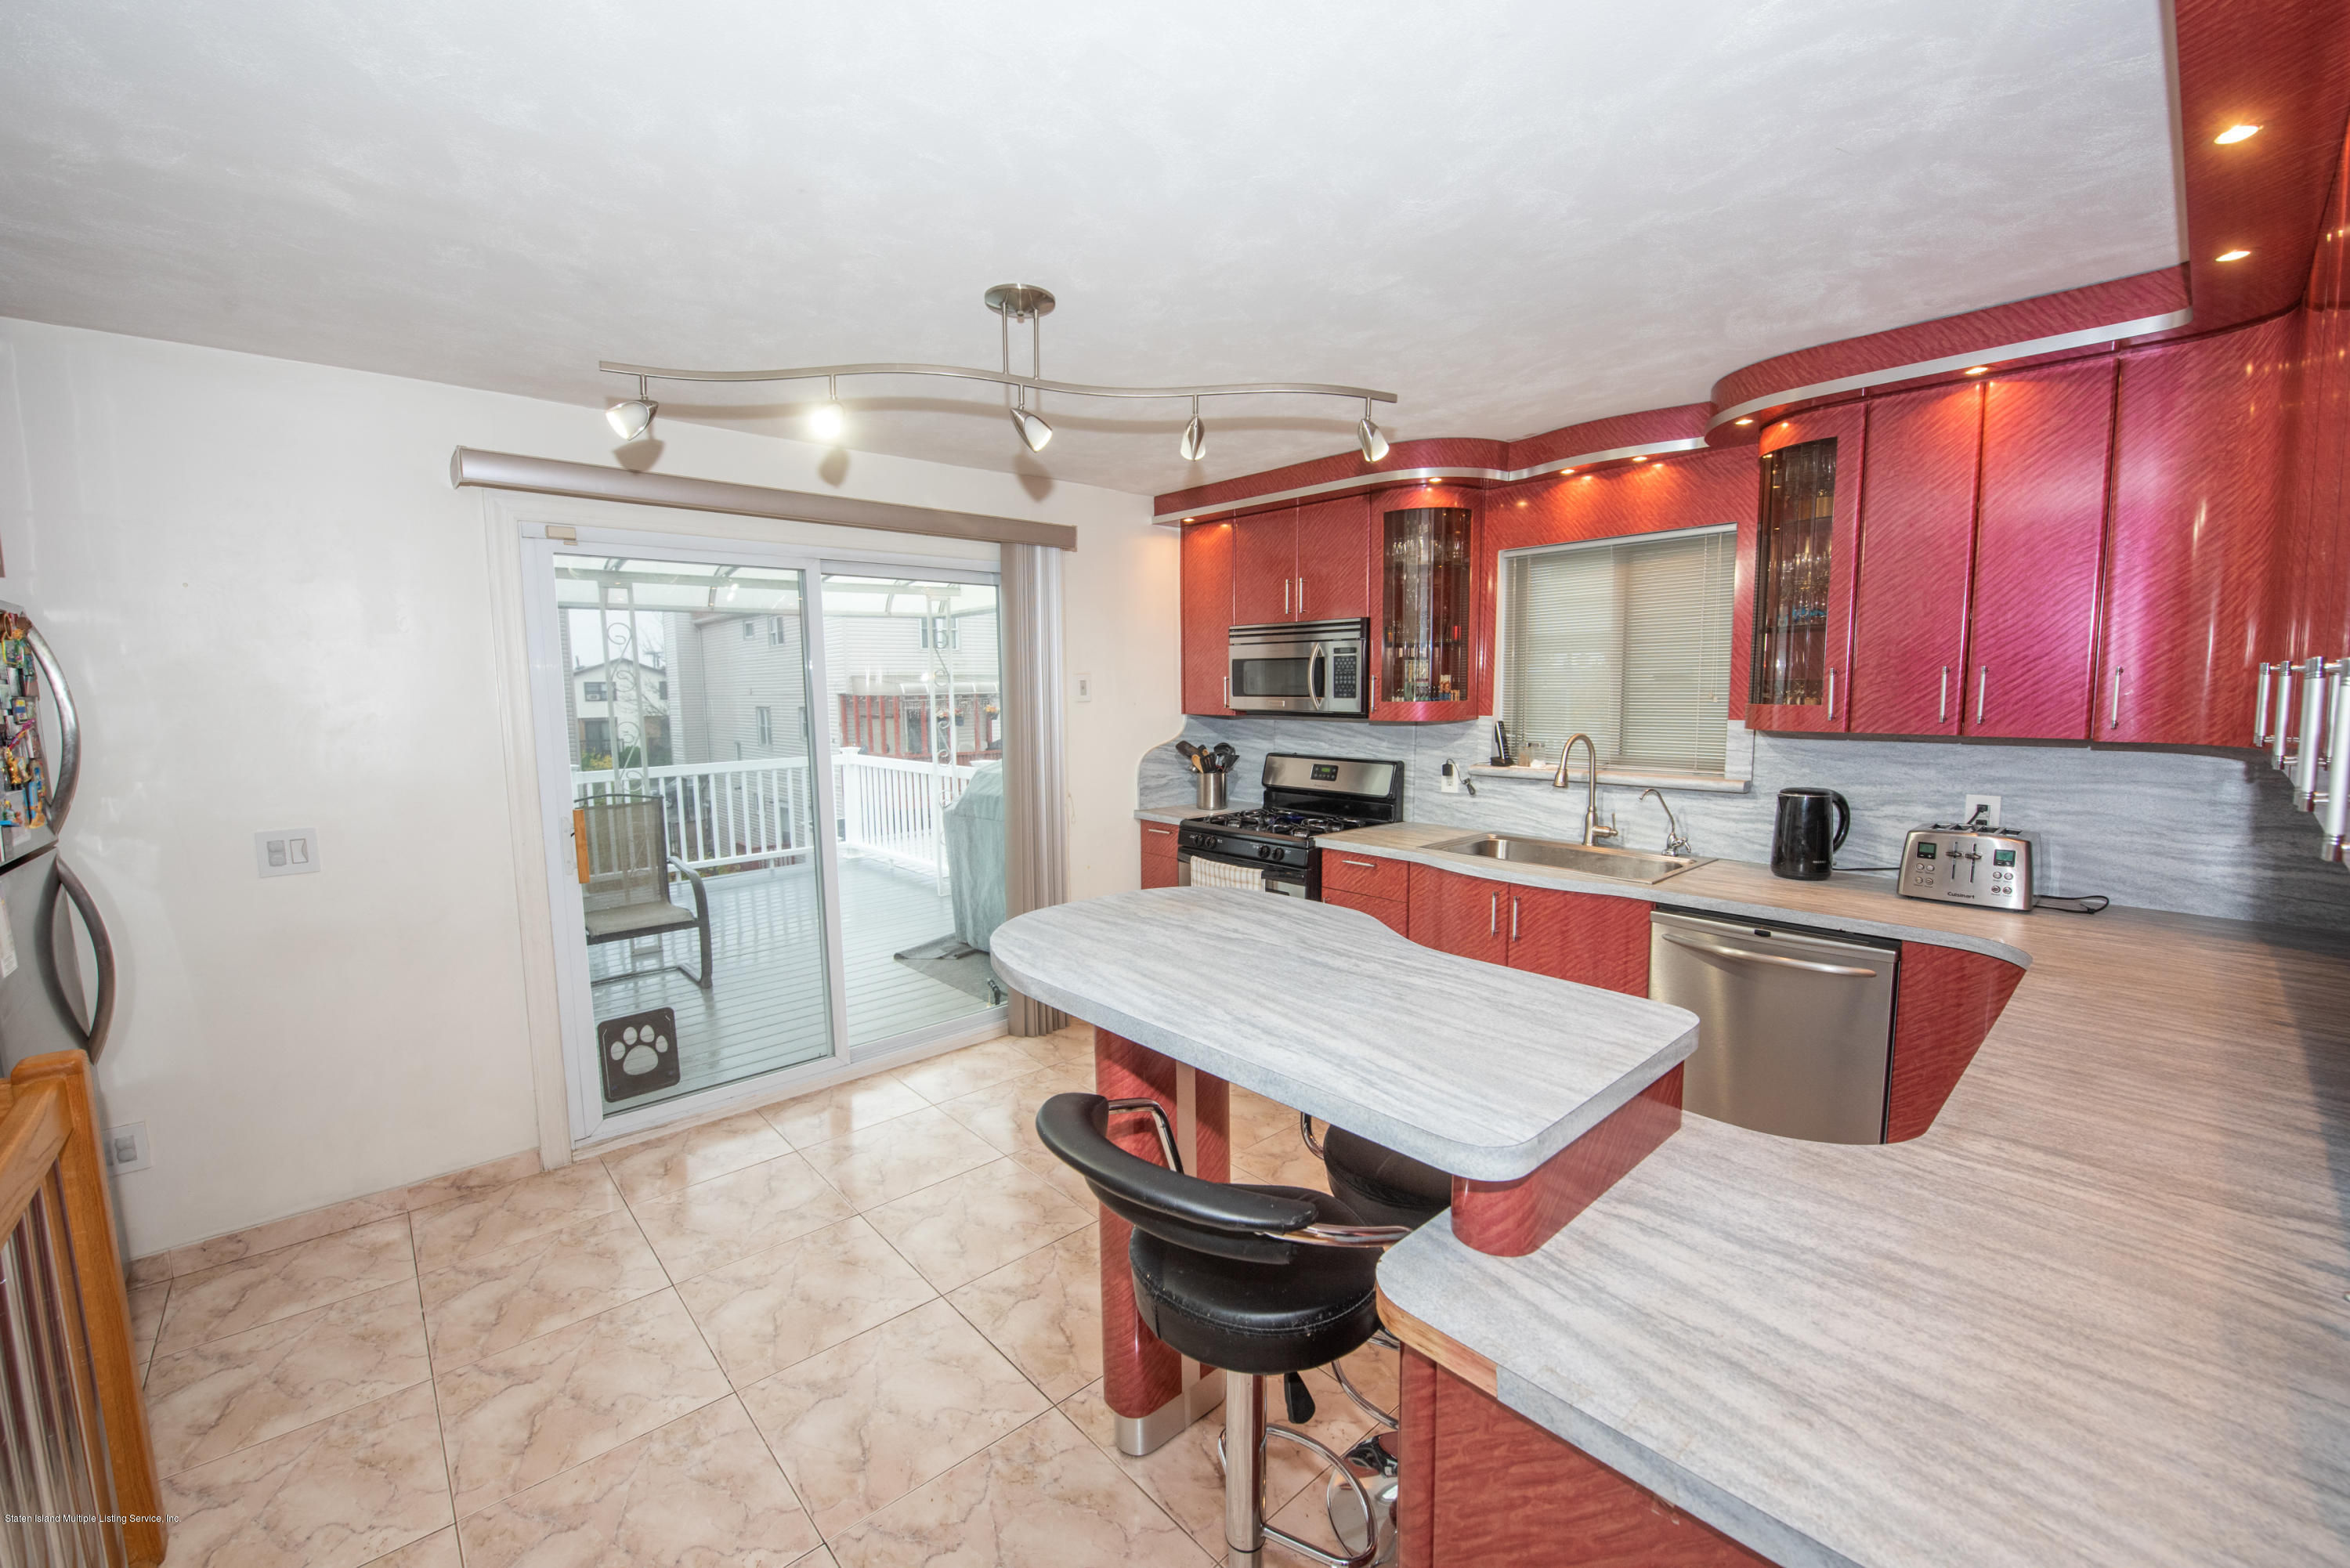 Single Family - Semi-Attached 76 Mcveigh Avenue  Staten Island, NY 10314, MLS-1133370-11